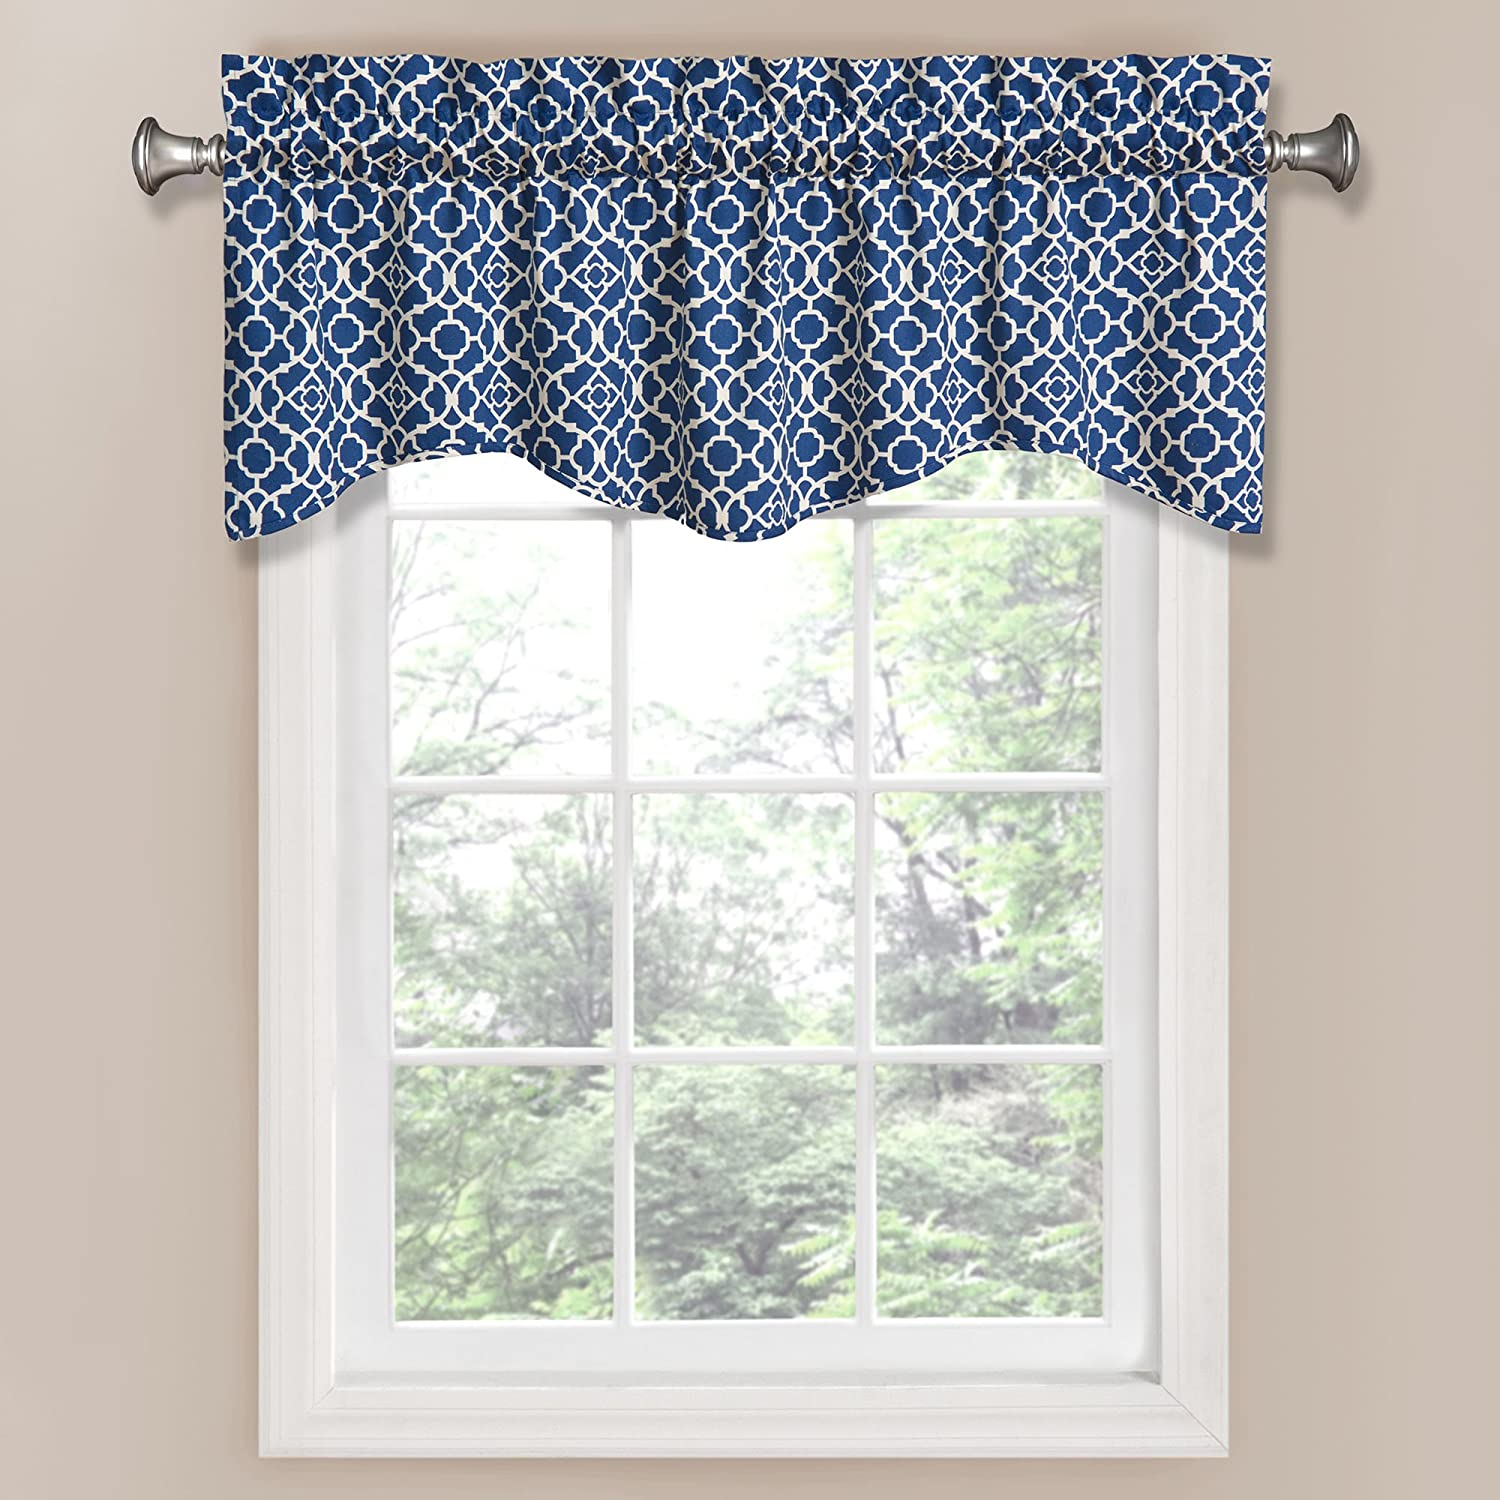 Amazon.com: Waverly 12459050X016IND Lovely Lattice 50 Inch By 16 Inch  Window Valance, Indigo: Home U0026 Kitchen